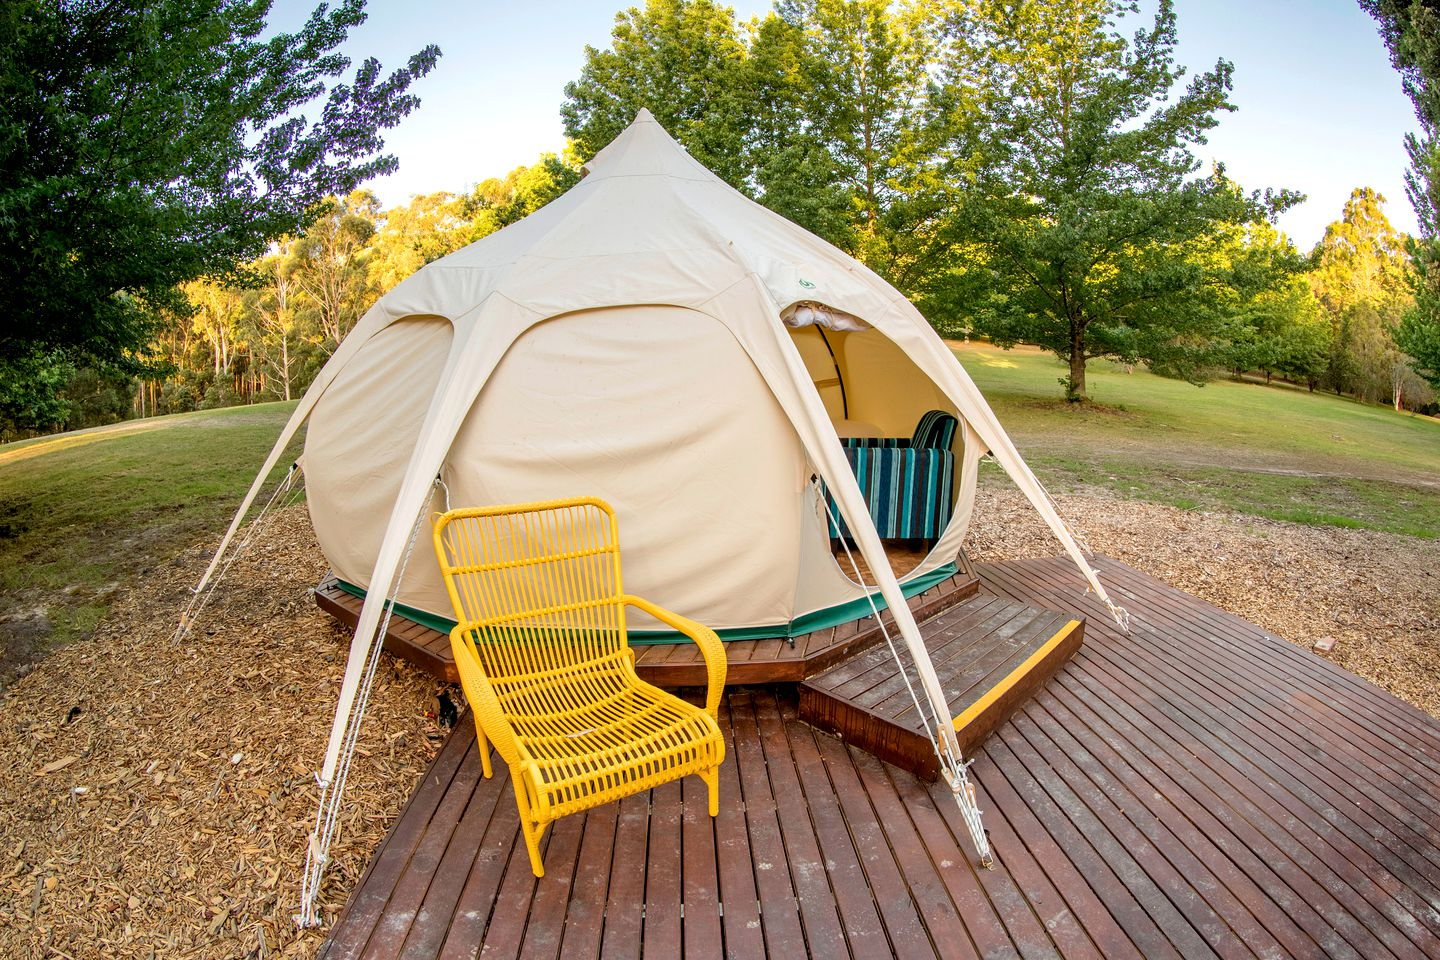 Yarra Valley bell tent for hire with private deck in Healesville, Victoria.